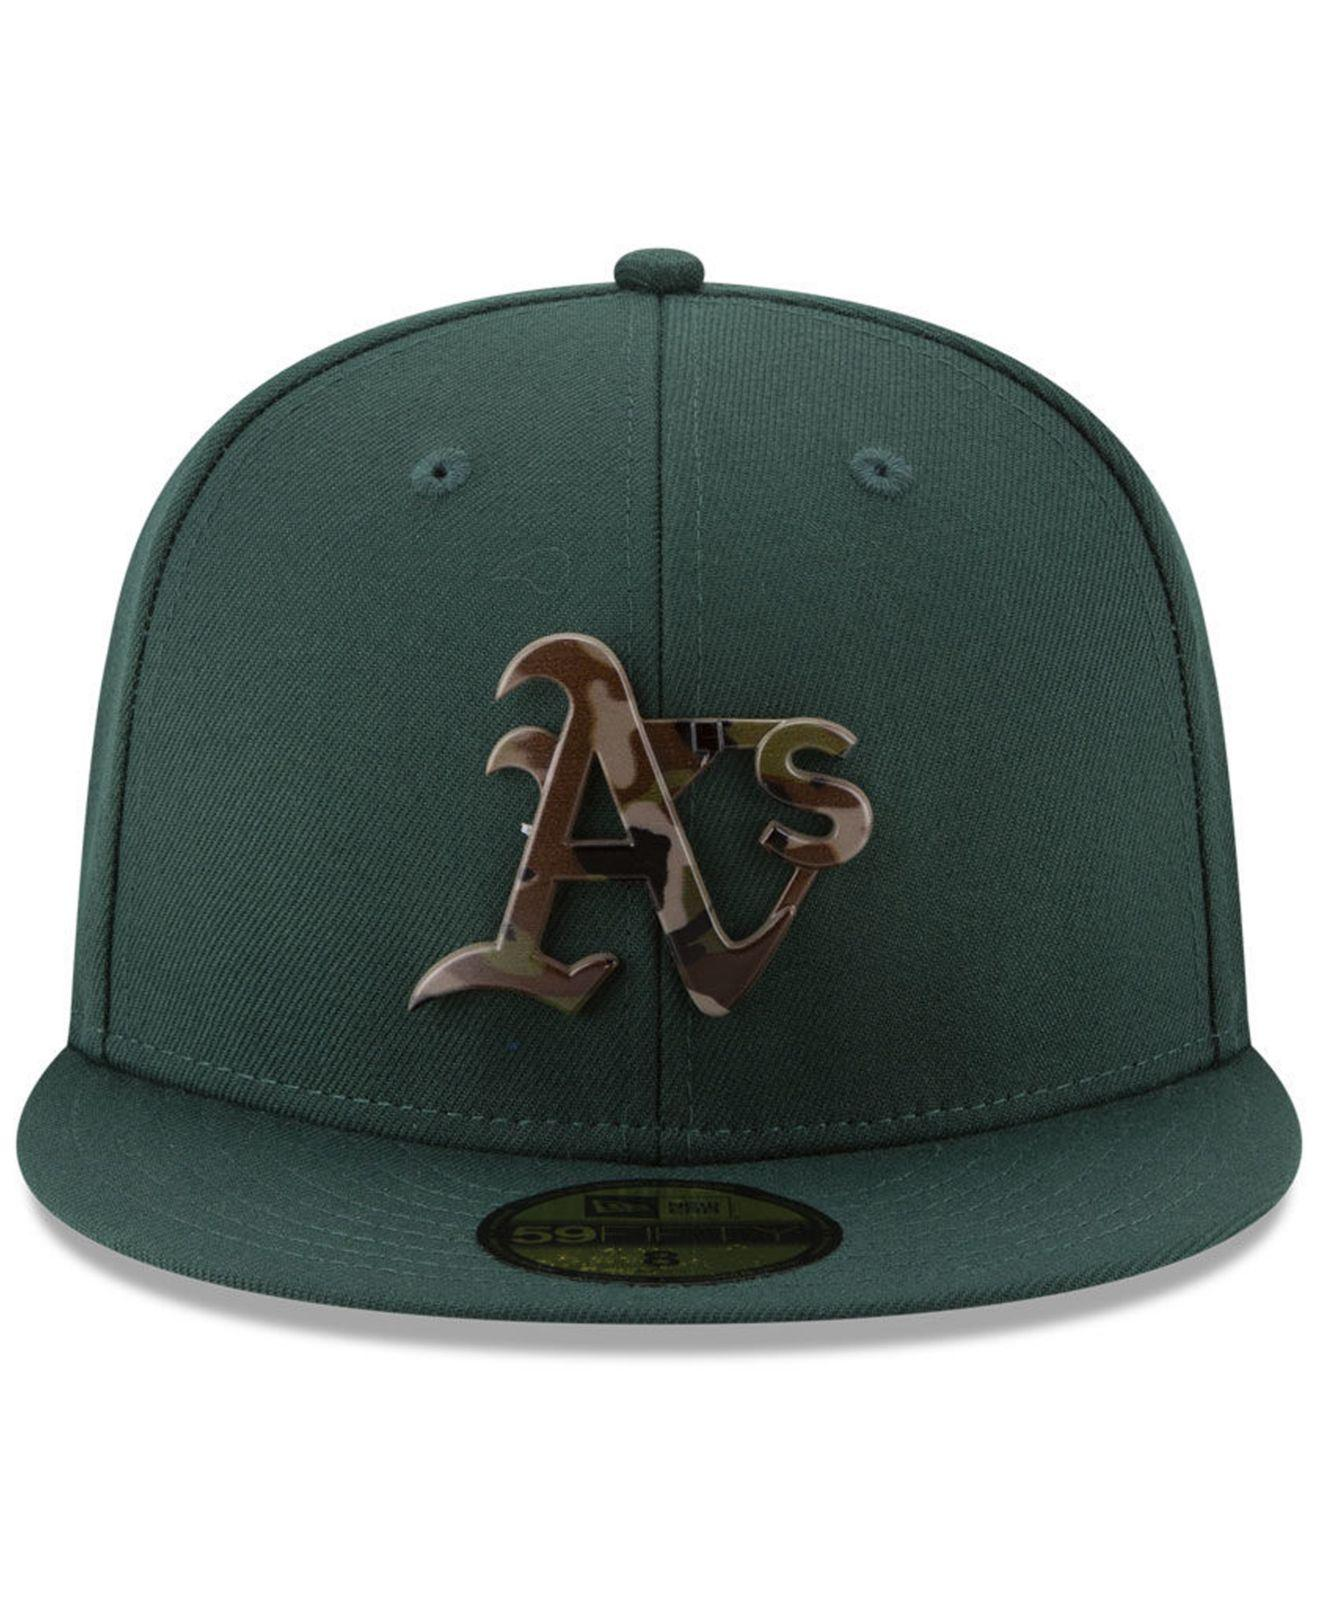 Lyst - Ktz Oakland Athletics Camo Capped 59fifty-fitted Cap in Green for Men ce4184d27430